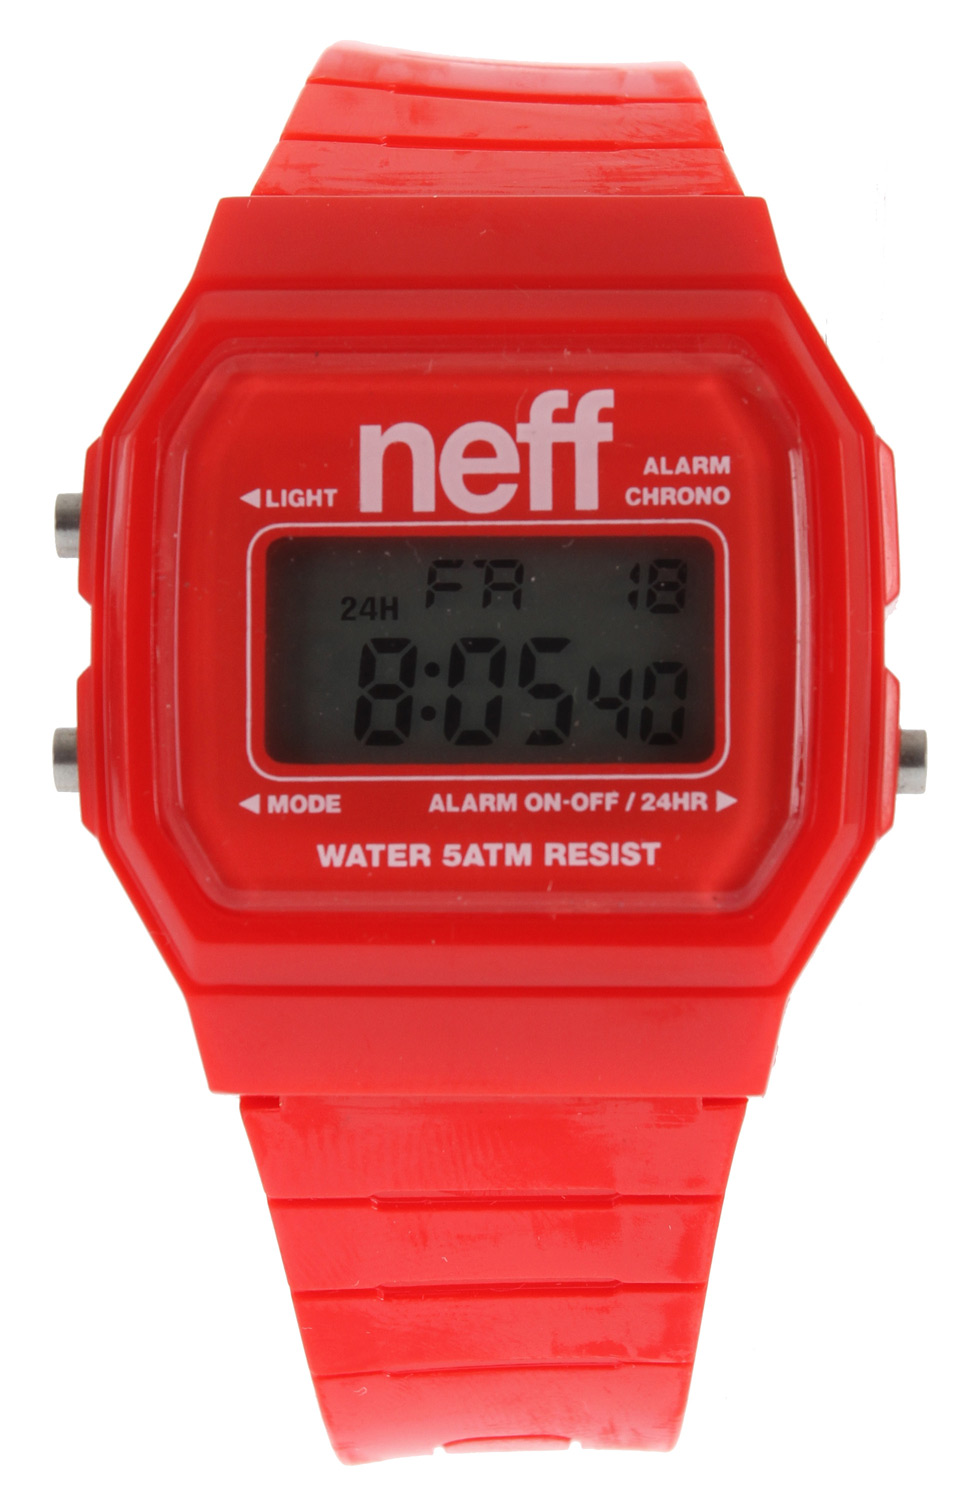 Skateboard Like a boss! High fives never looked so good!Key Features of the Neff Flava Watch: ABS case PU strap. Alarm Military Time Backlight Date Water resistant up to five meters Weight: 1 oz - $13.95